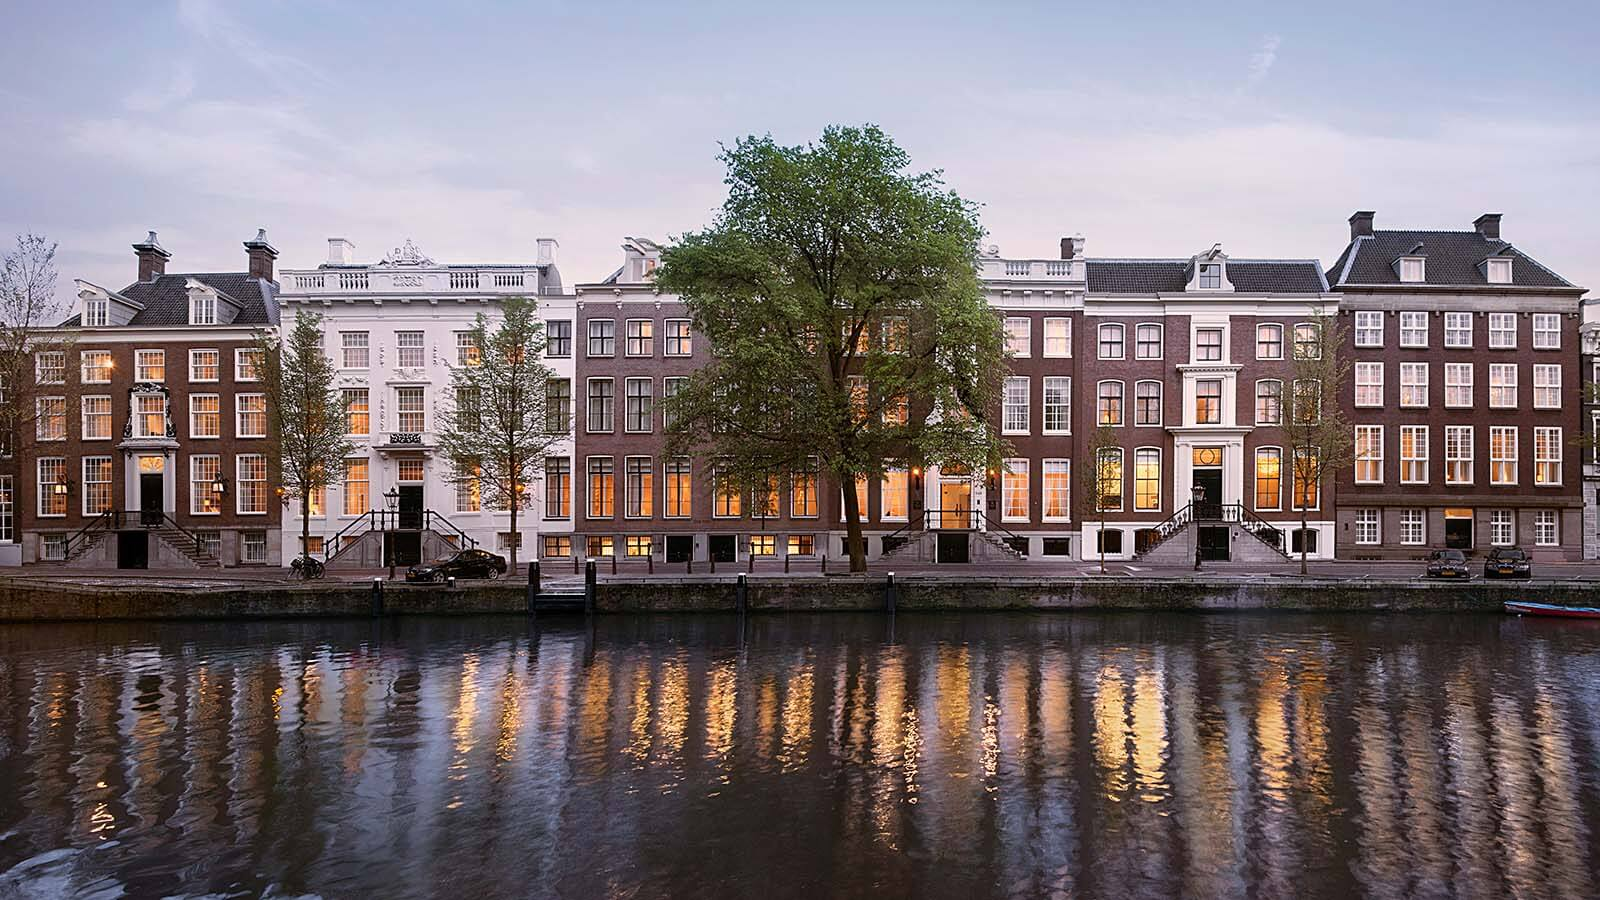 Evening exterior of the Waldorf Astoria Amsterdam in the Netherlands.